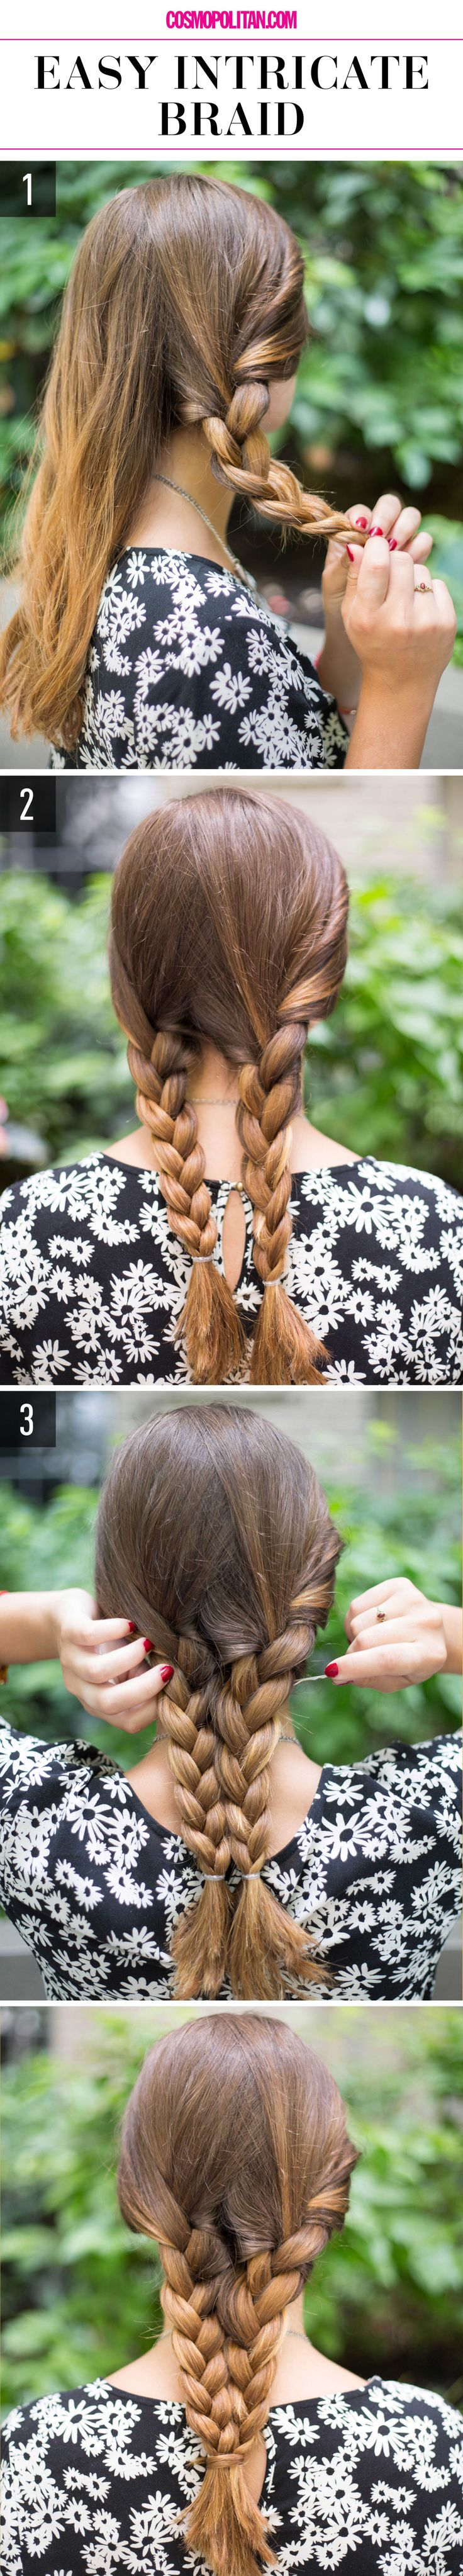 best hair styles images on pinterest beauty tips make up